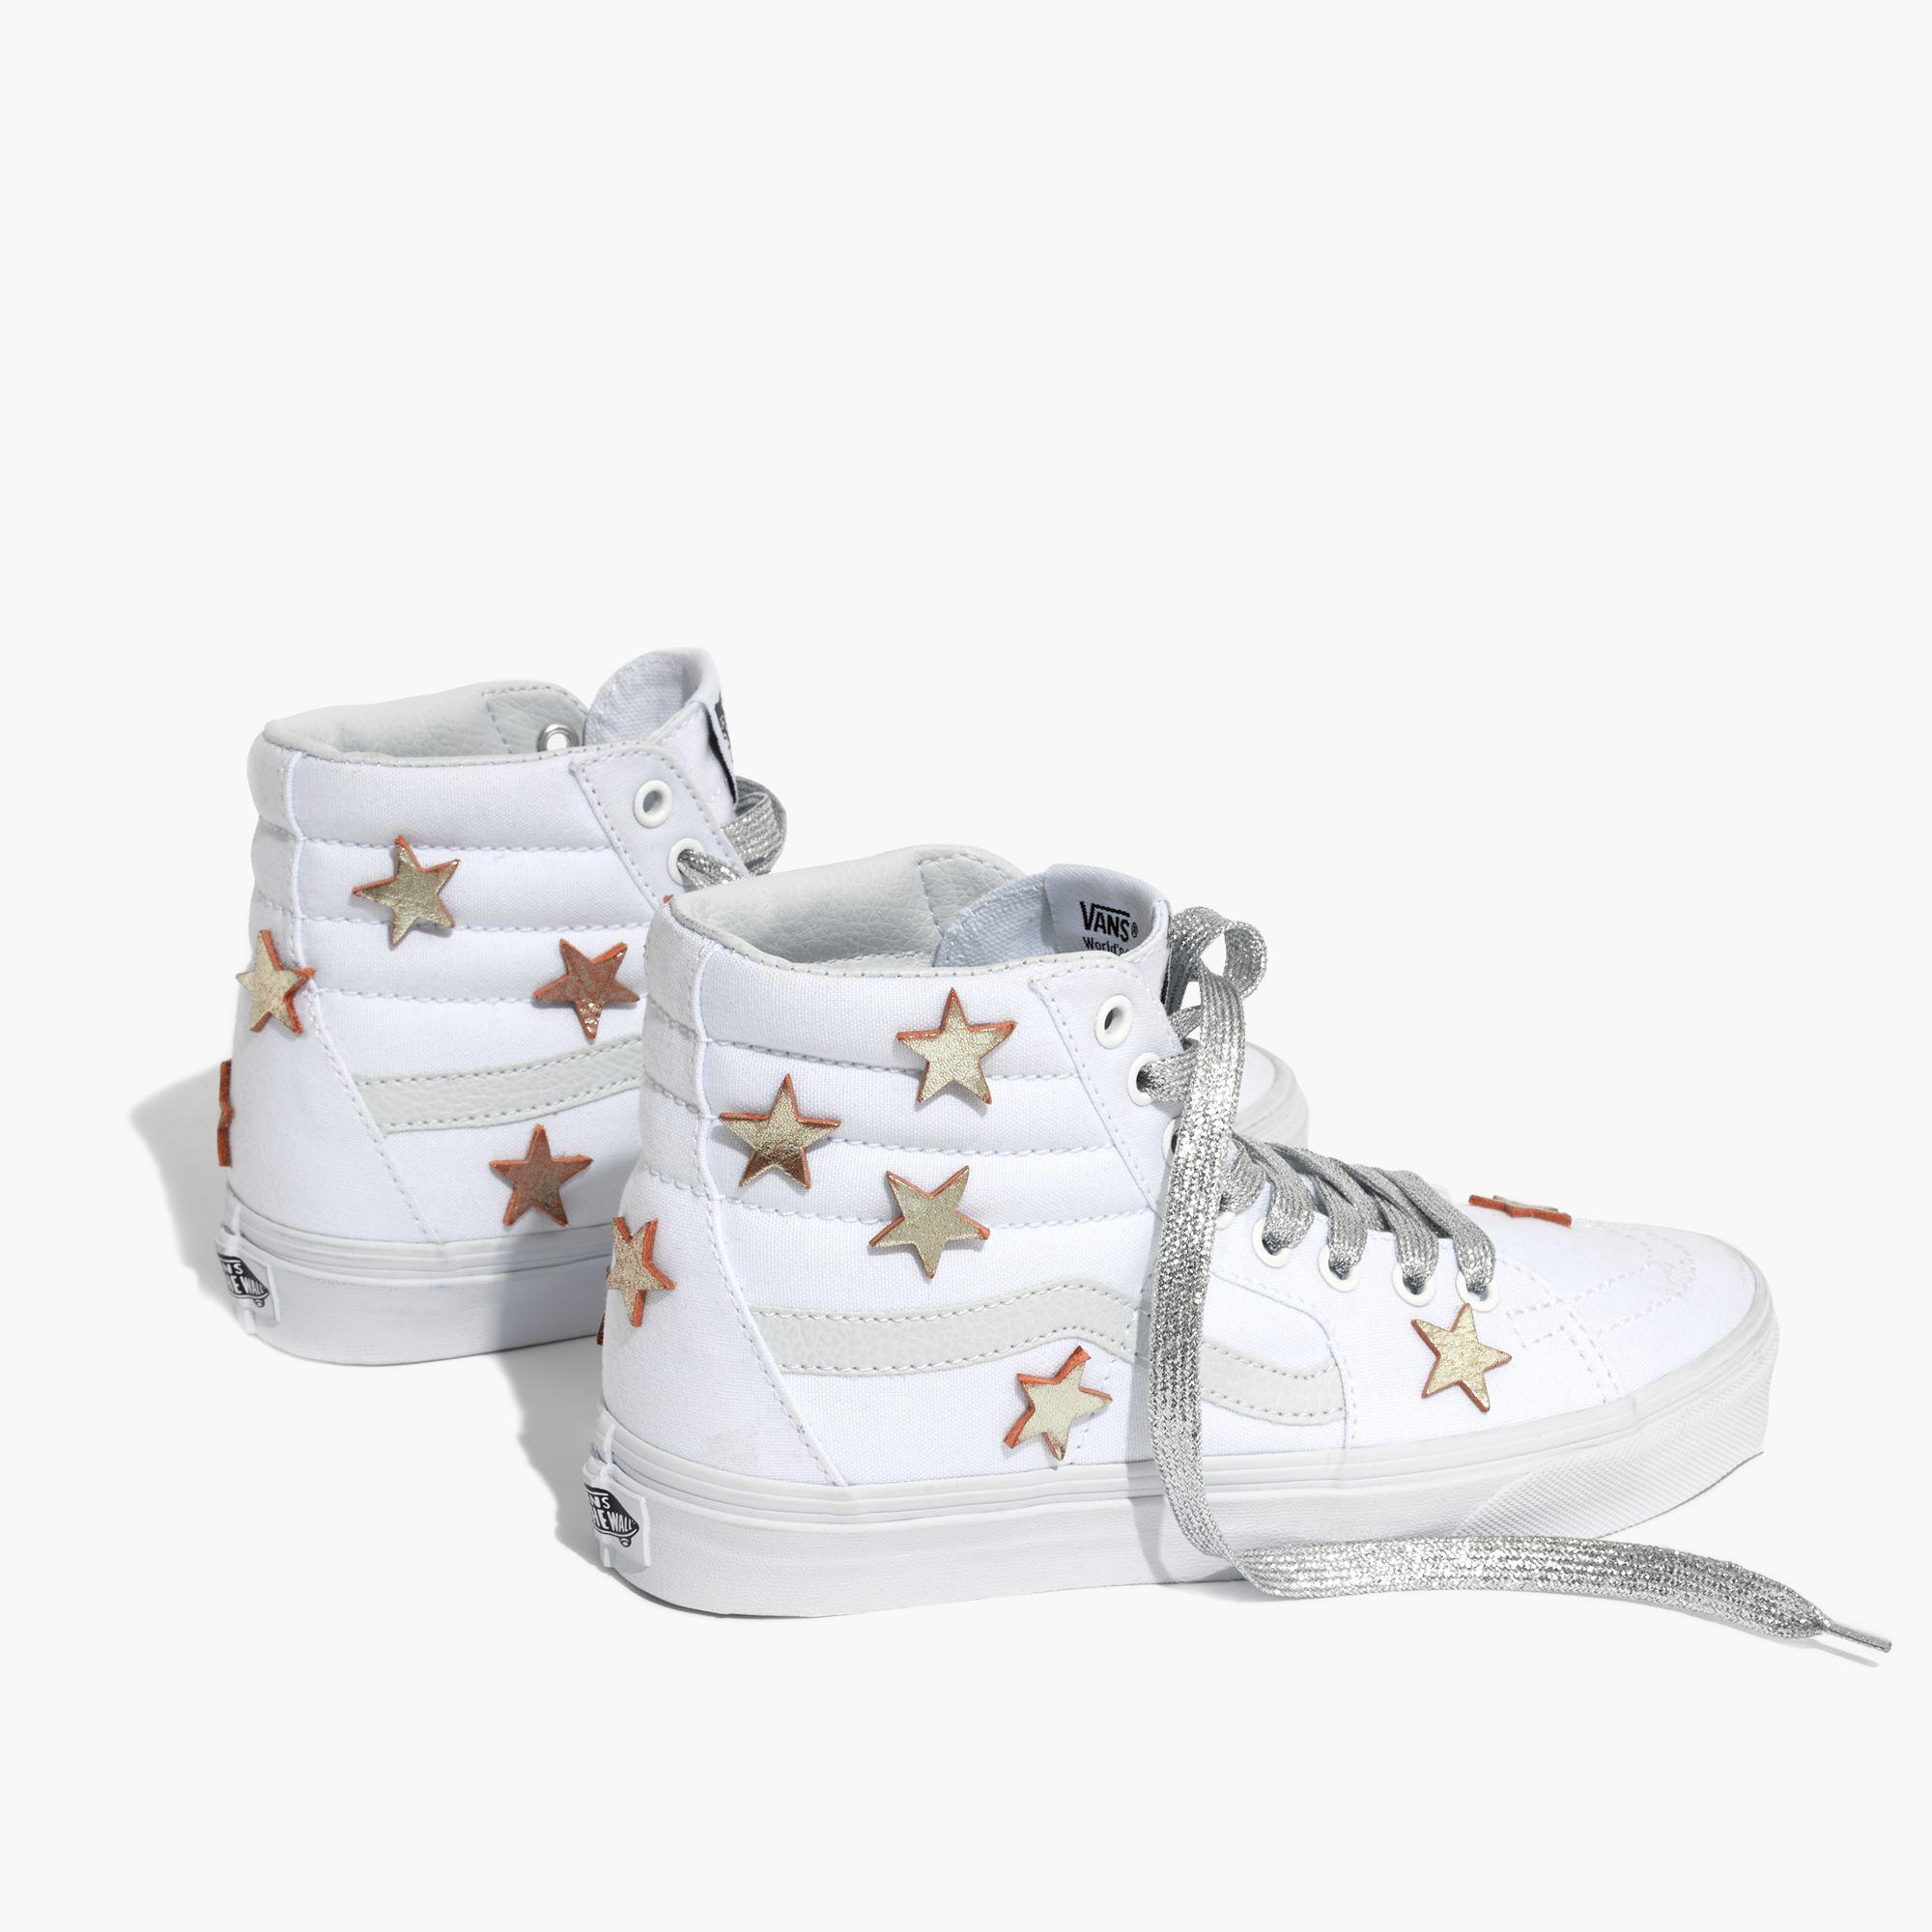 4d7aa6064431fe Madewell Star-patched Vans® Unisex Sk8-hi High-top Sneakers in ...